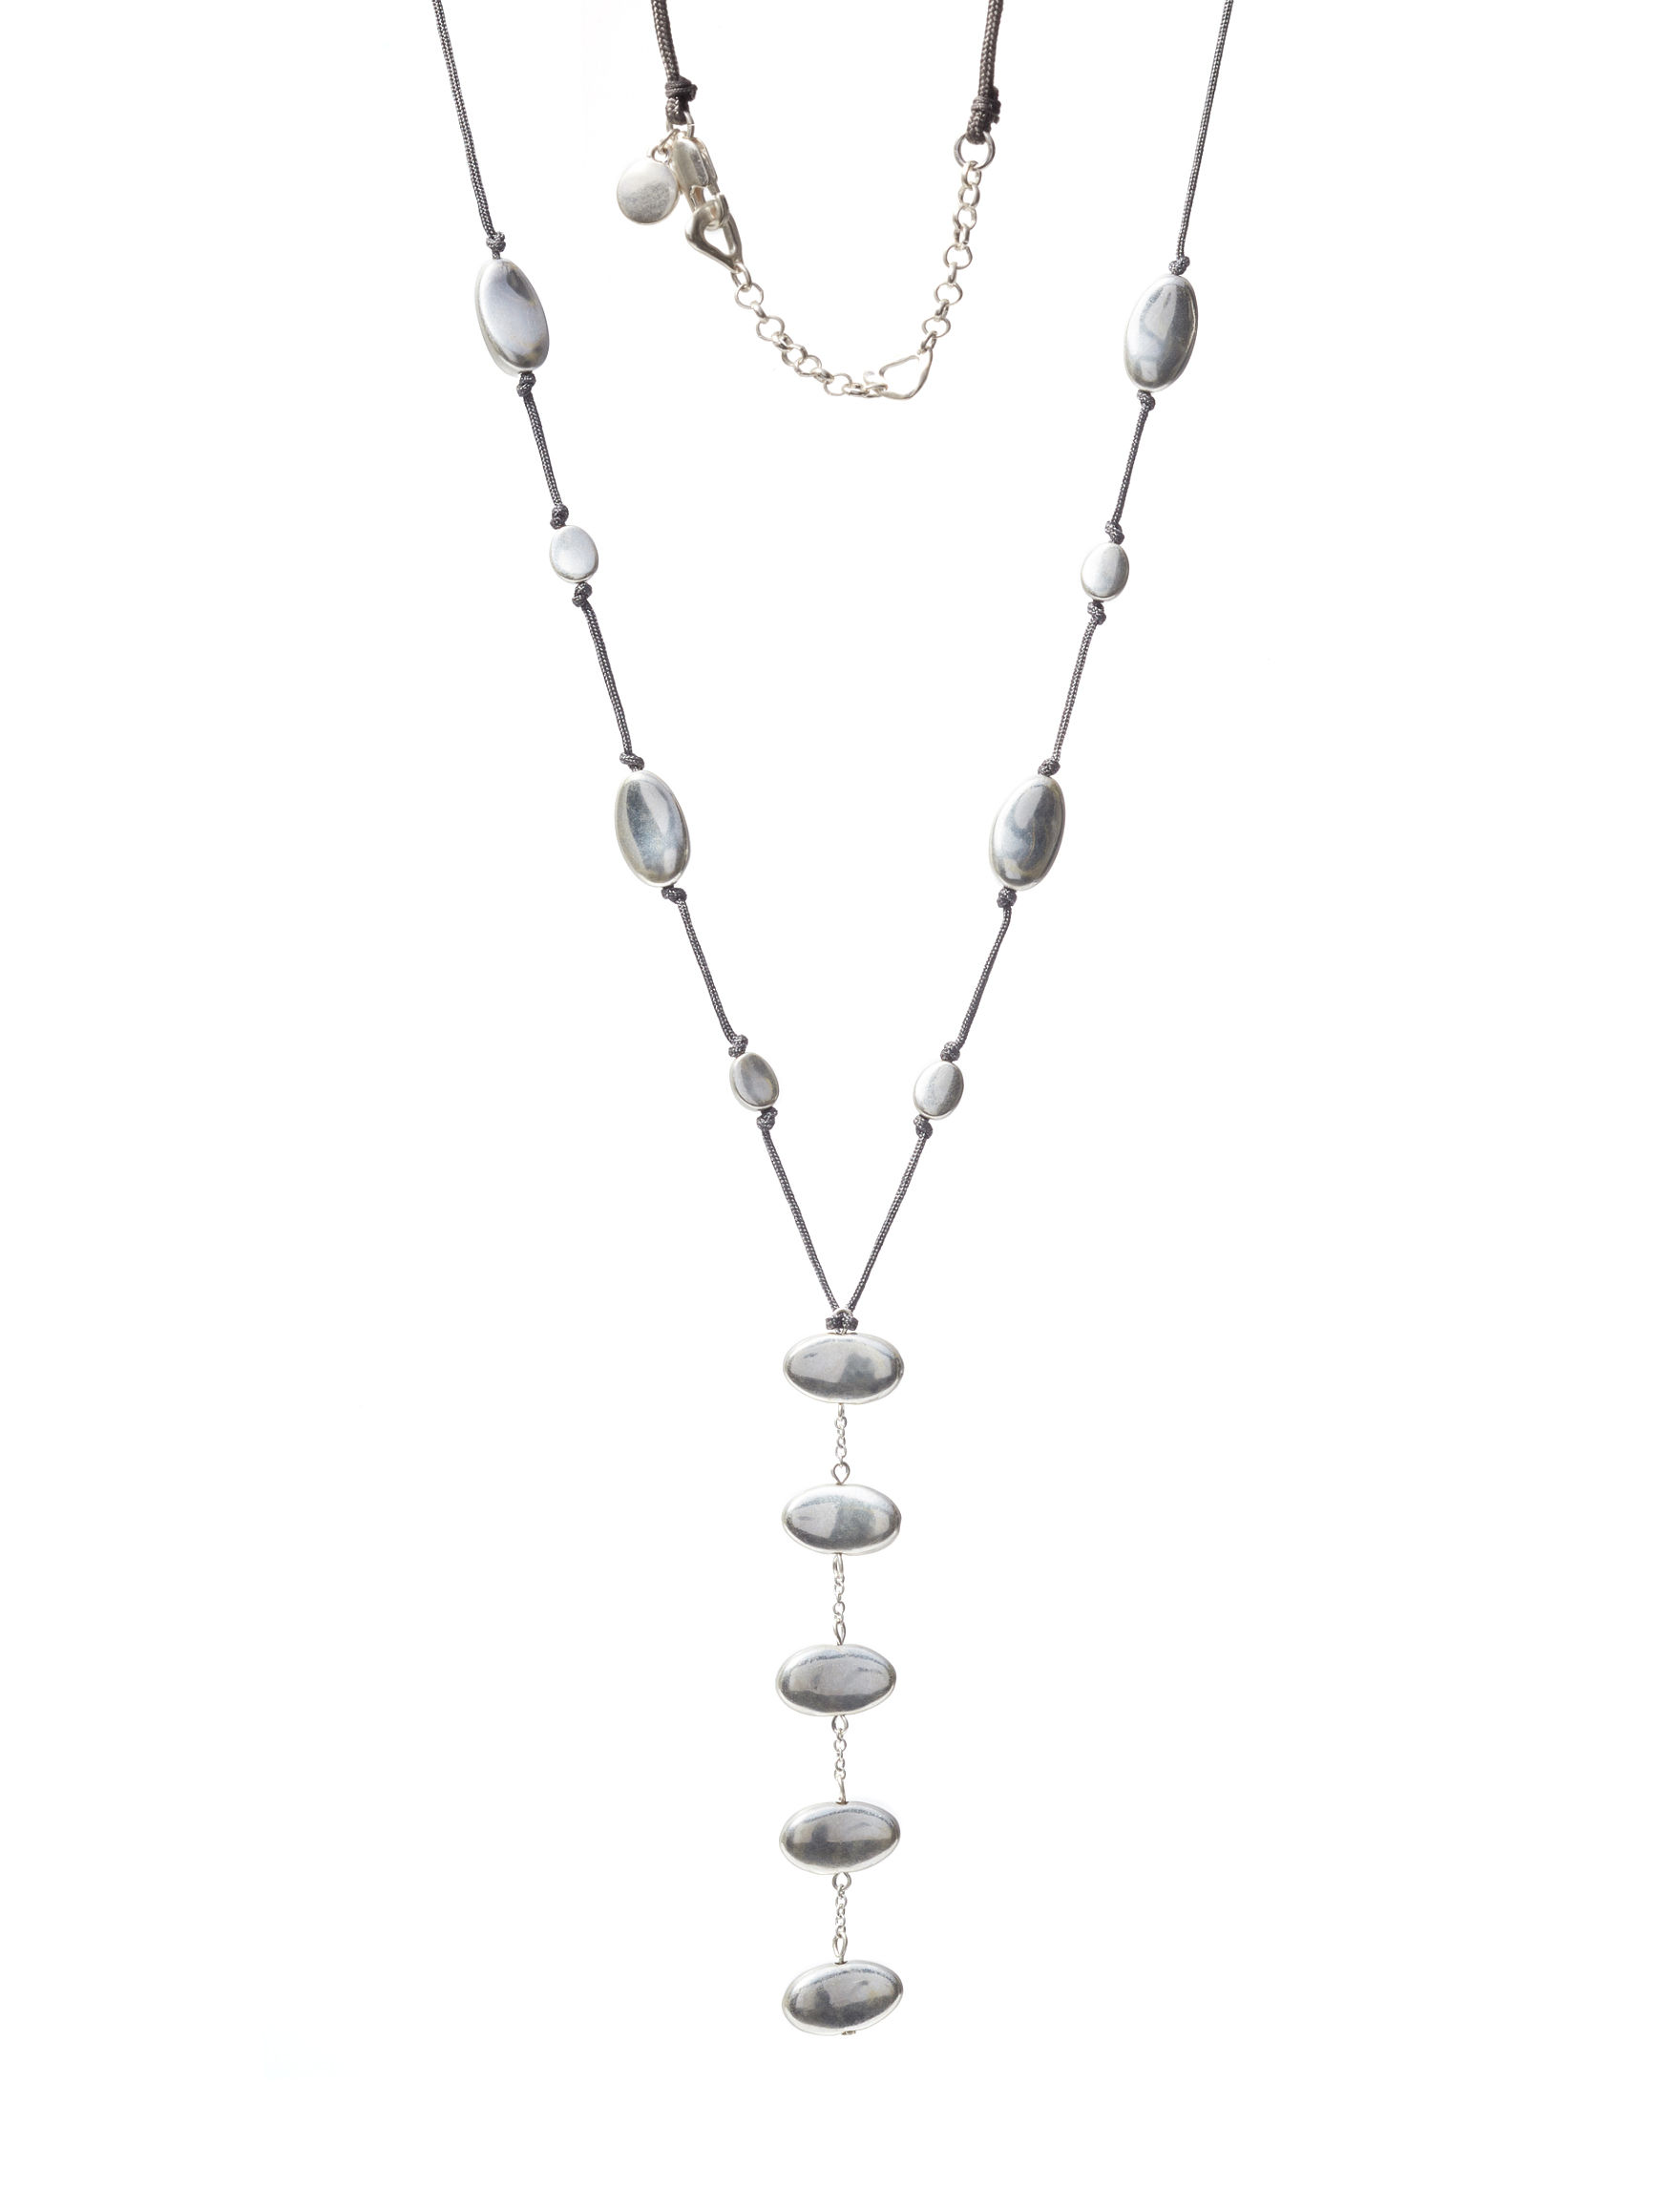 Bella Uno Silver Necklaces & Pendants Fashion Jewelry